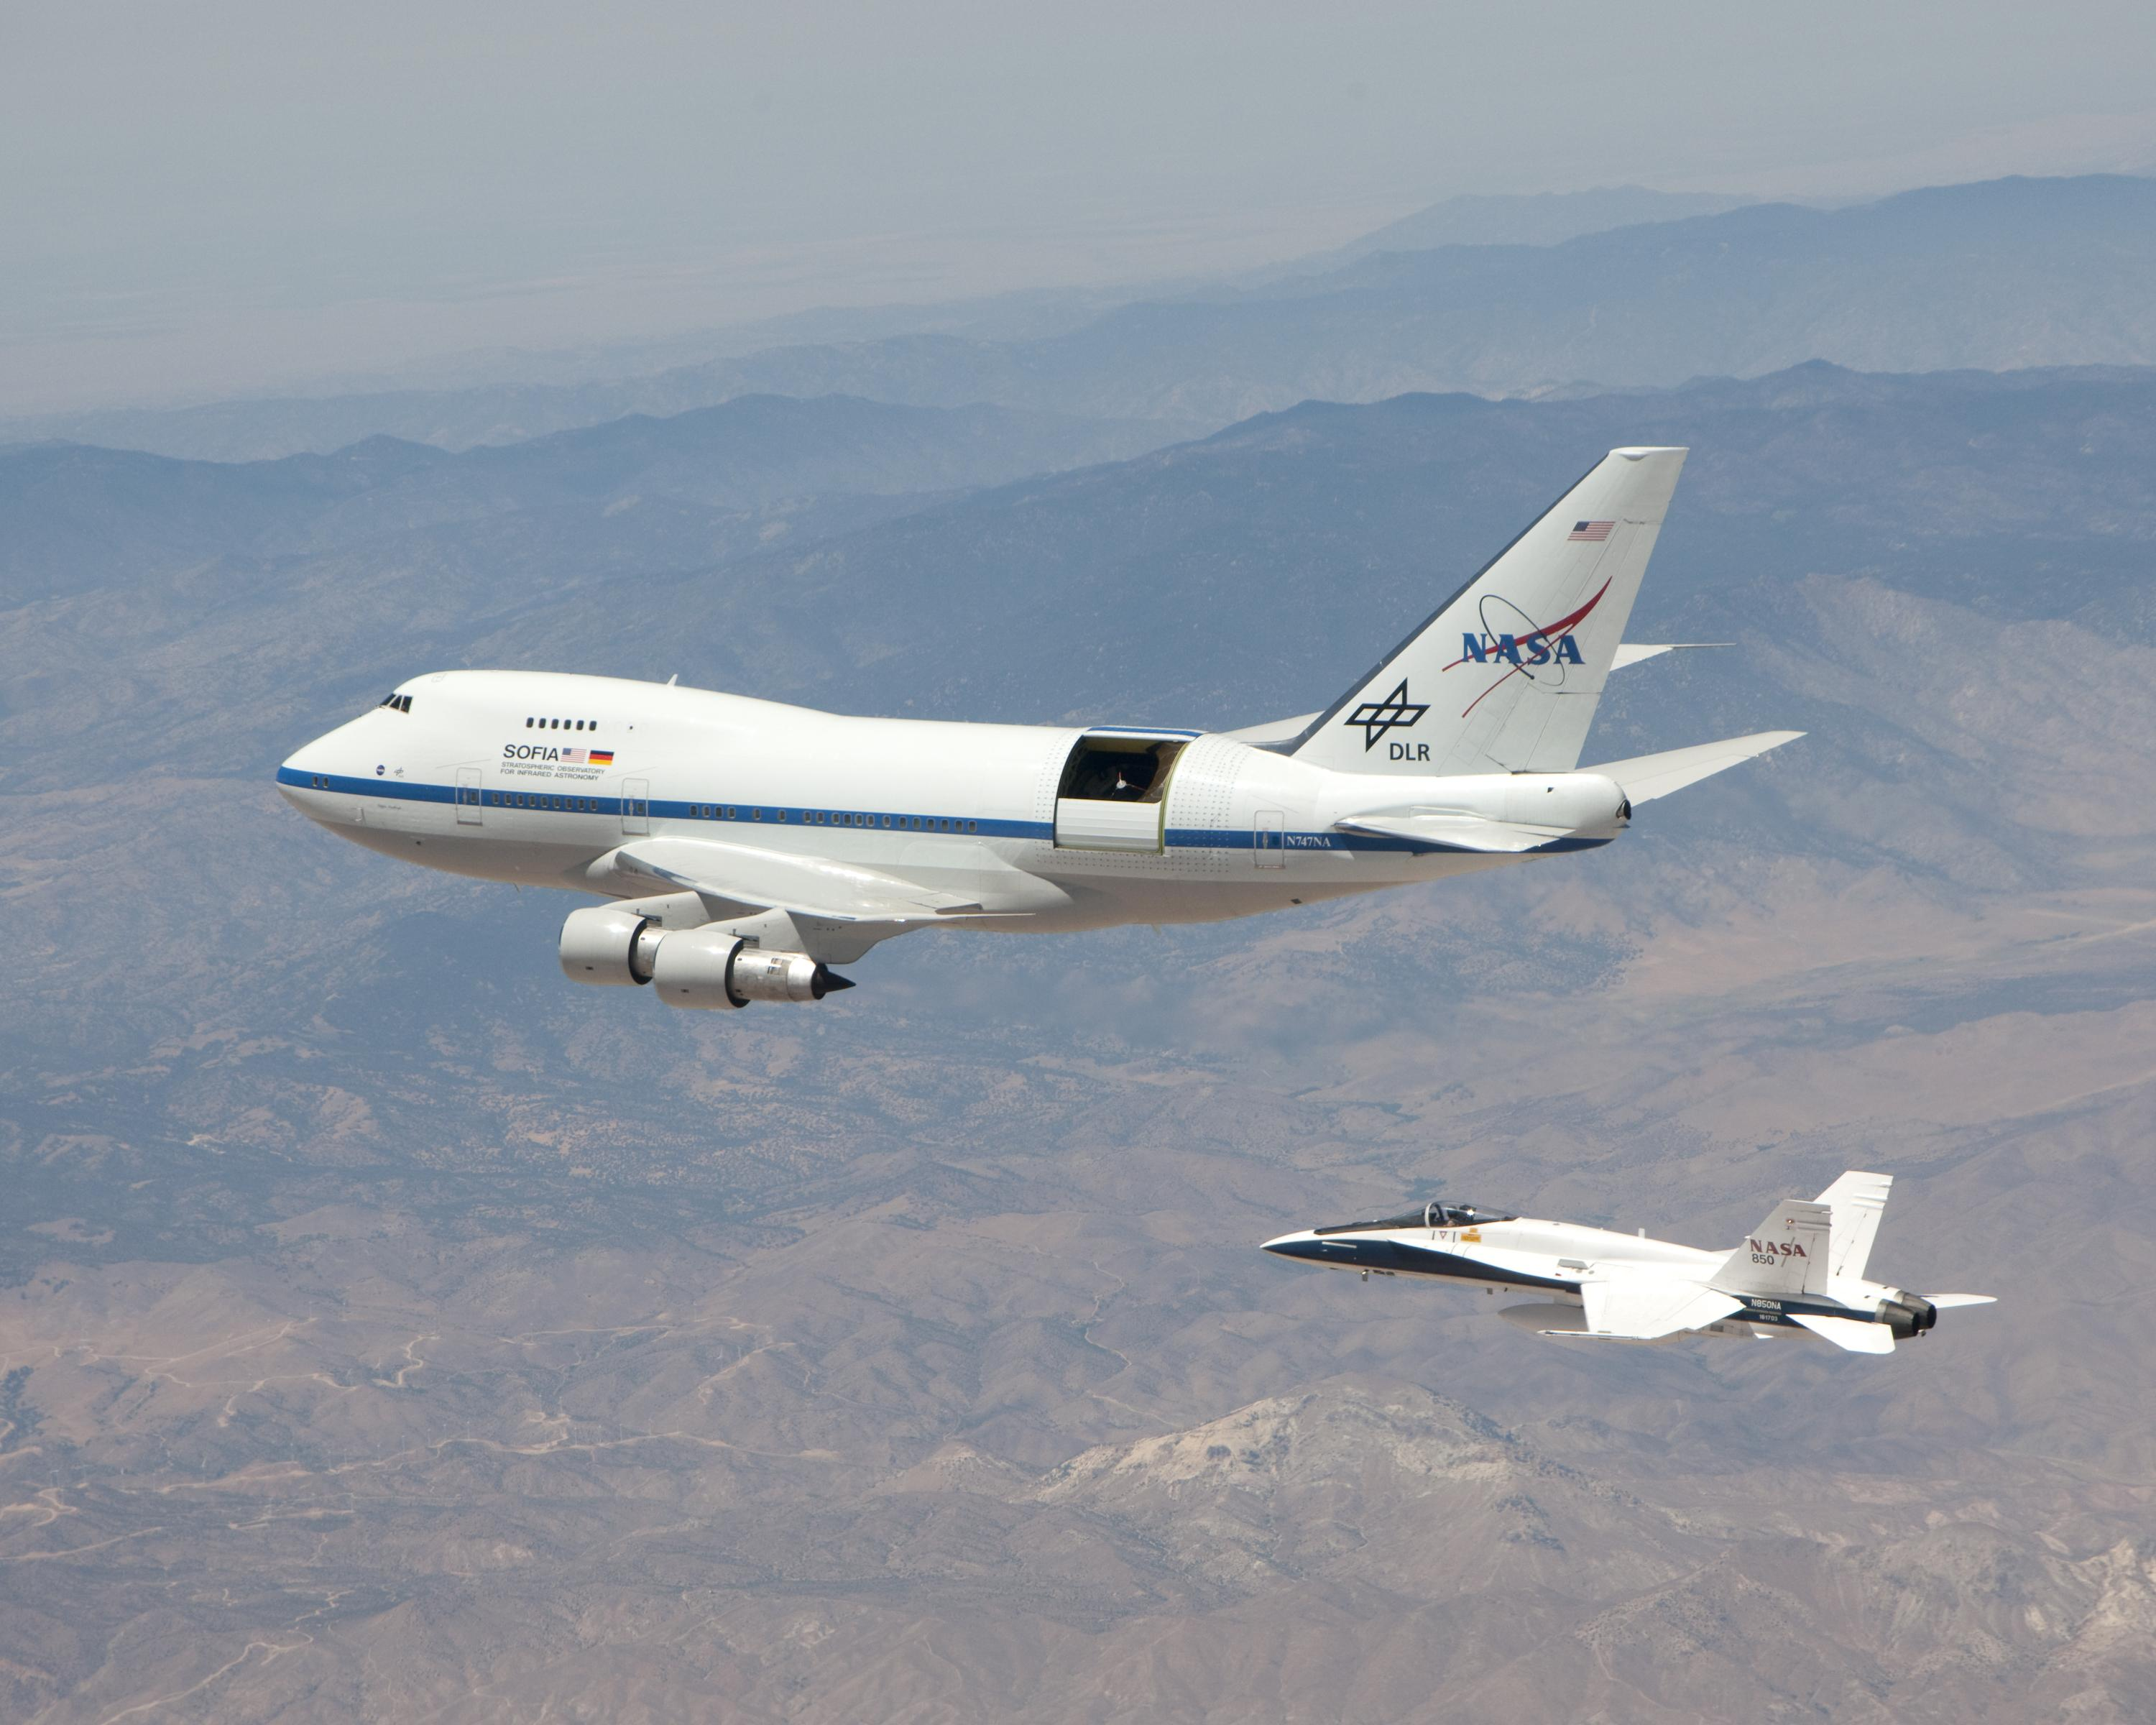 NASA's Stratospheric Observatory for Infrared Astronomy ...